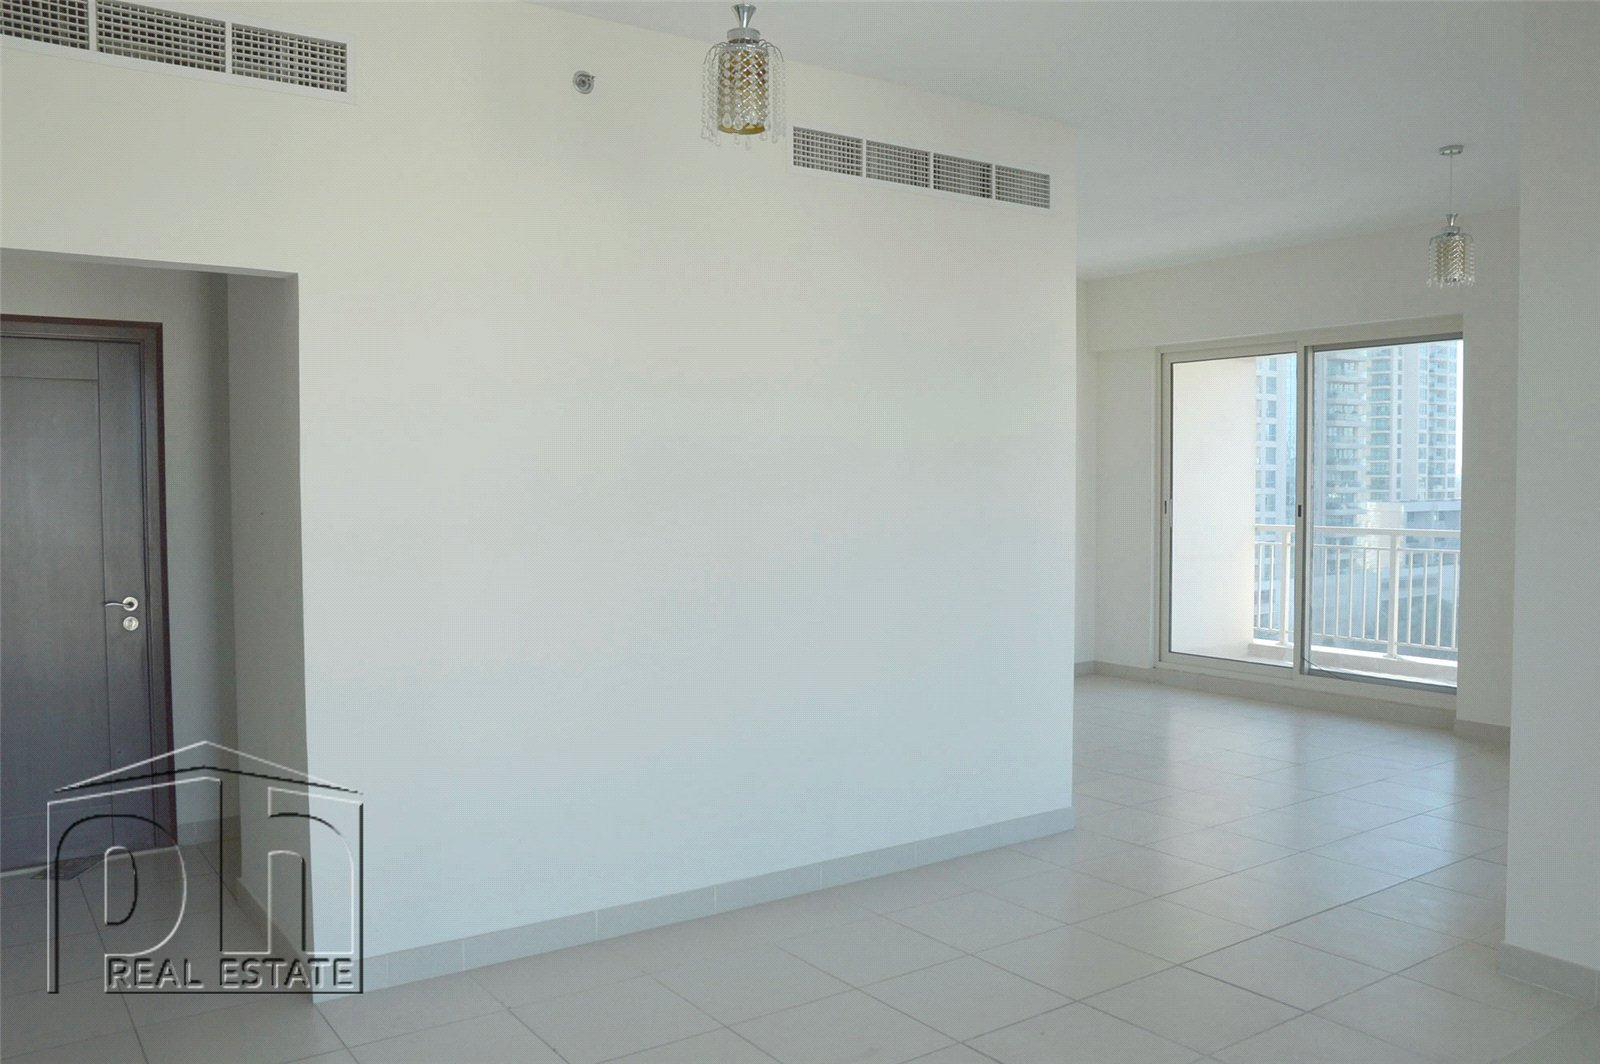 Dbl180446 l two bedroom two bathroom apartment to rent in mosela the views dubai for 1 bedroom flat to rent in bath